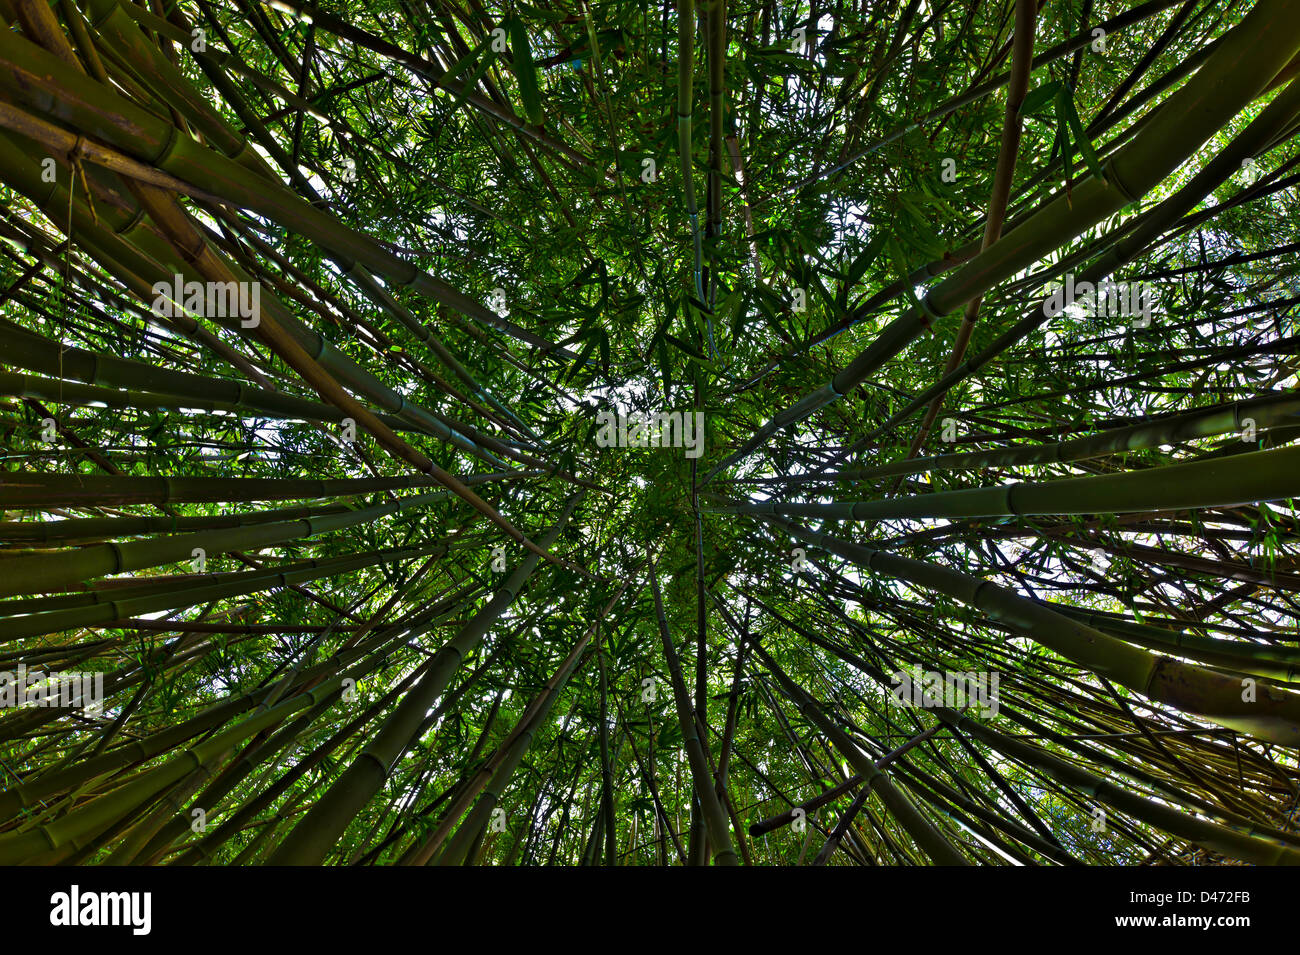 View upward toward treetops in a bamboo forest in the West Maui Mountains, Hawaii. Stock Photo